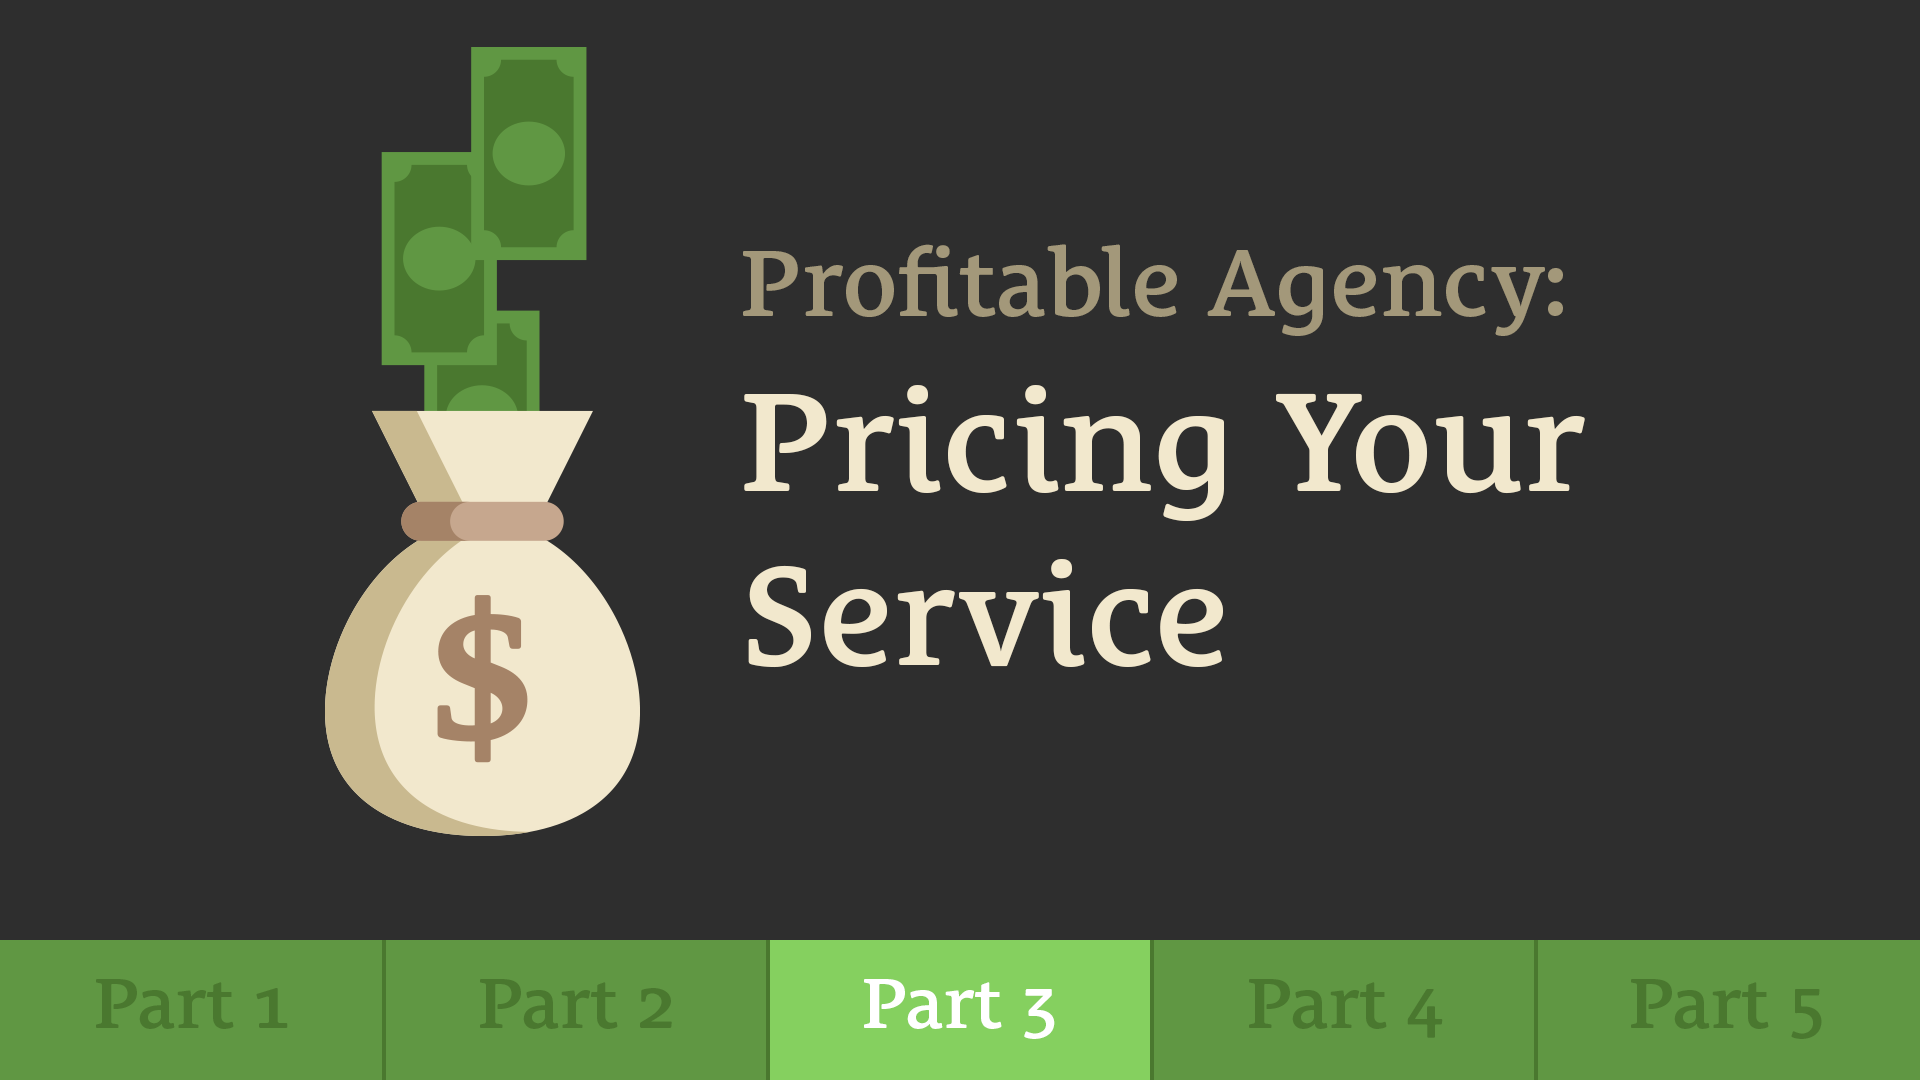 498: Build a Profitable Agency - Part 3: Pricing Your Service